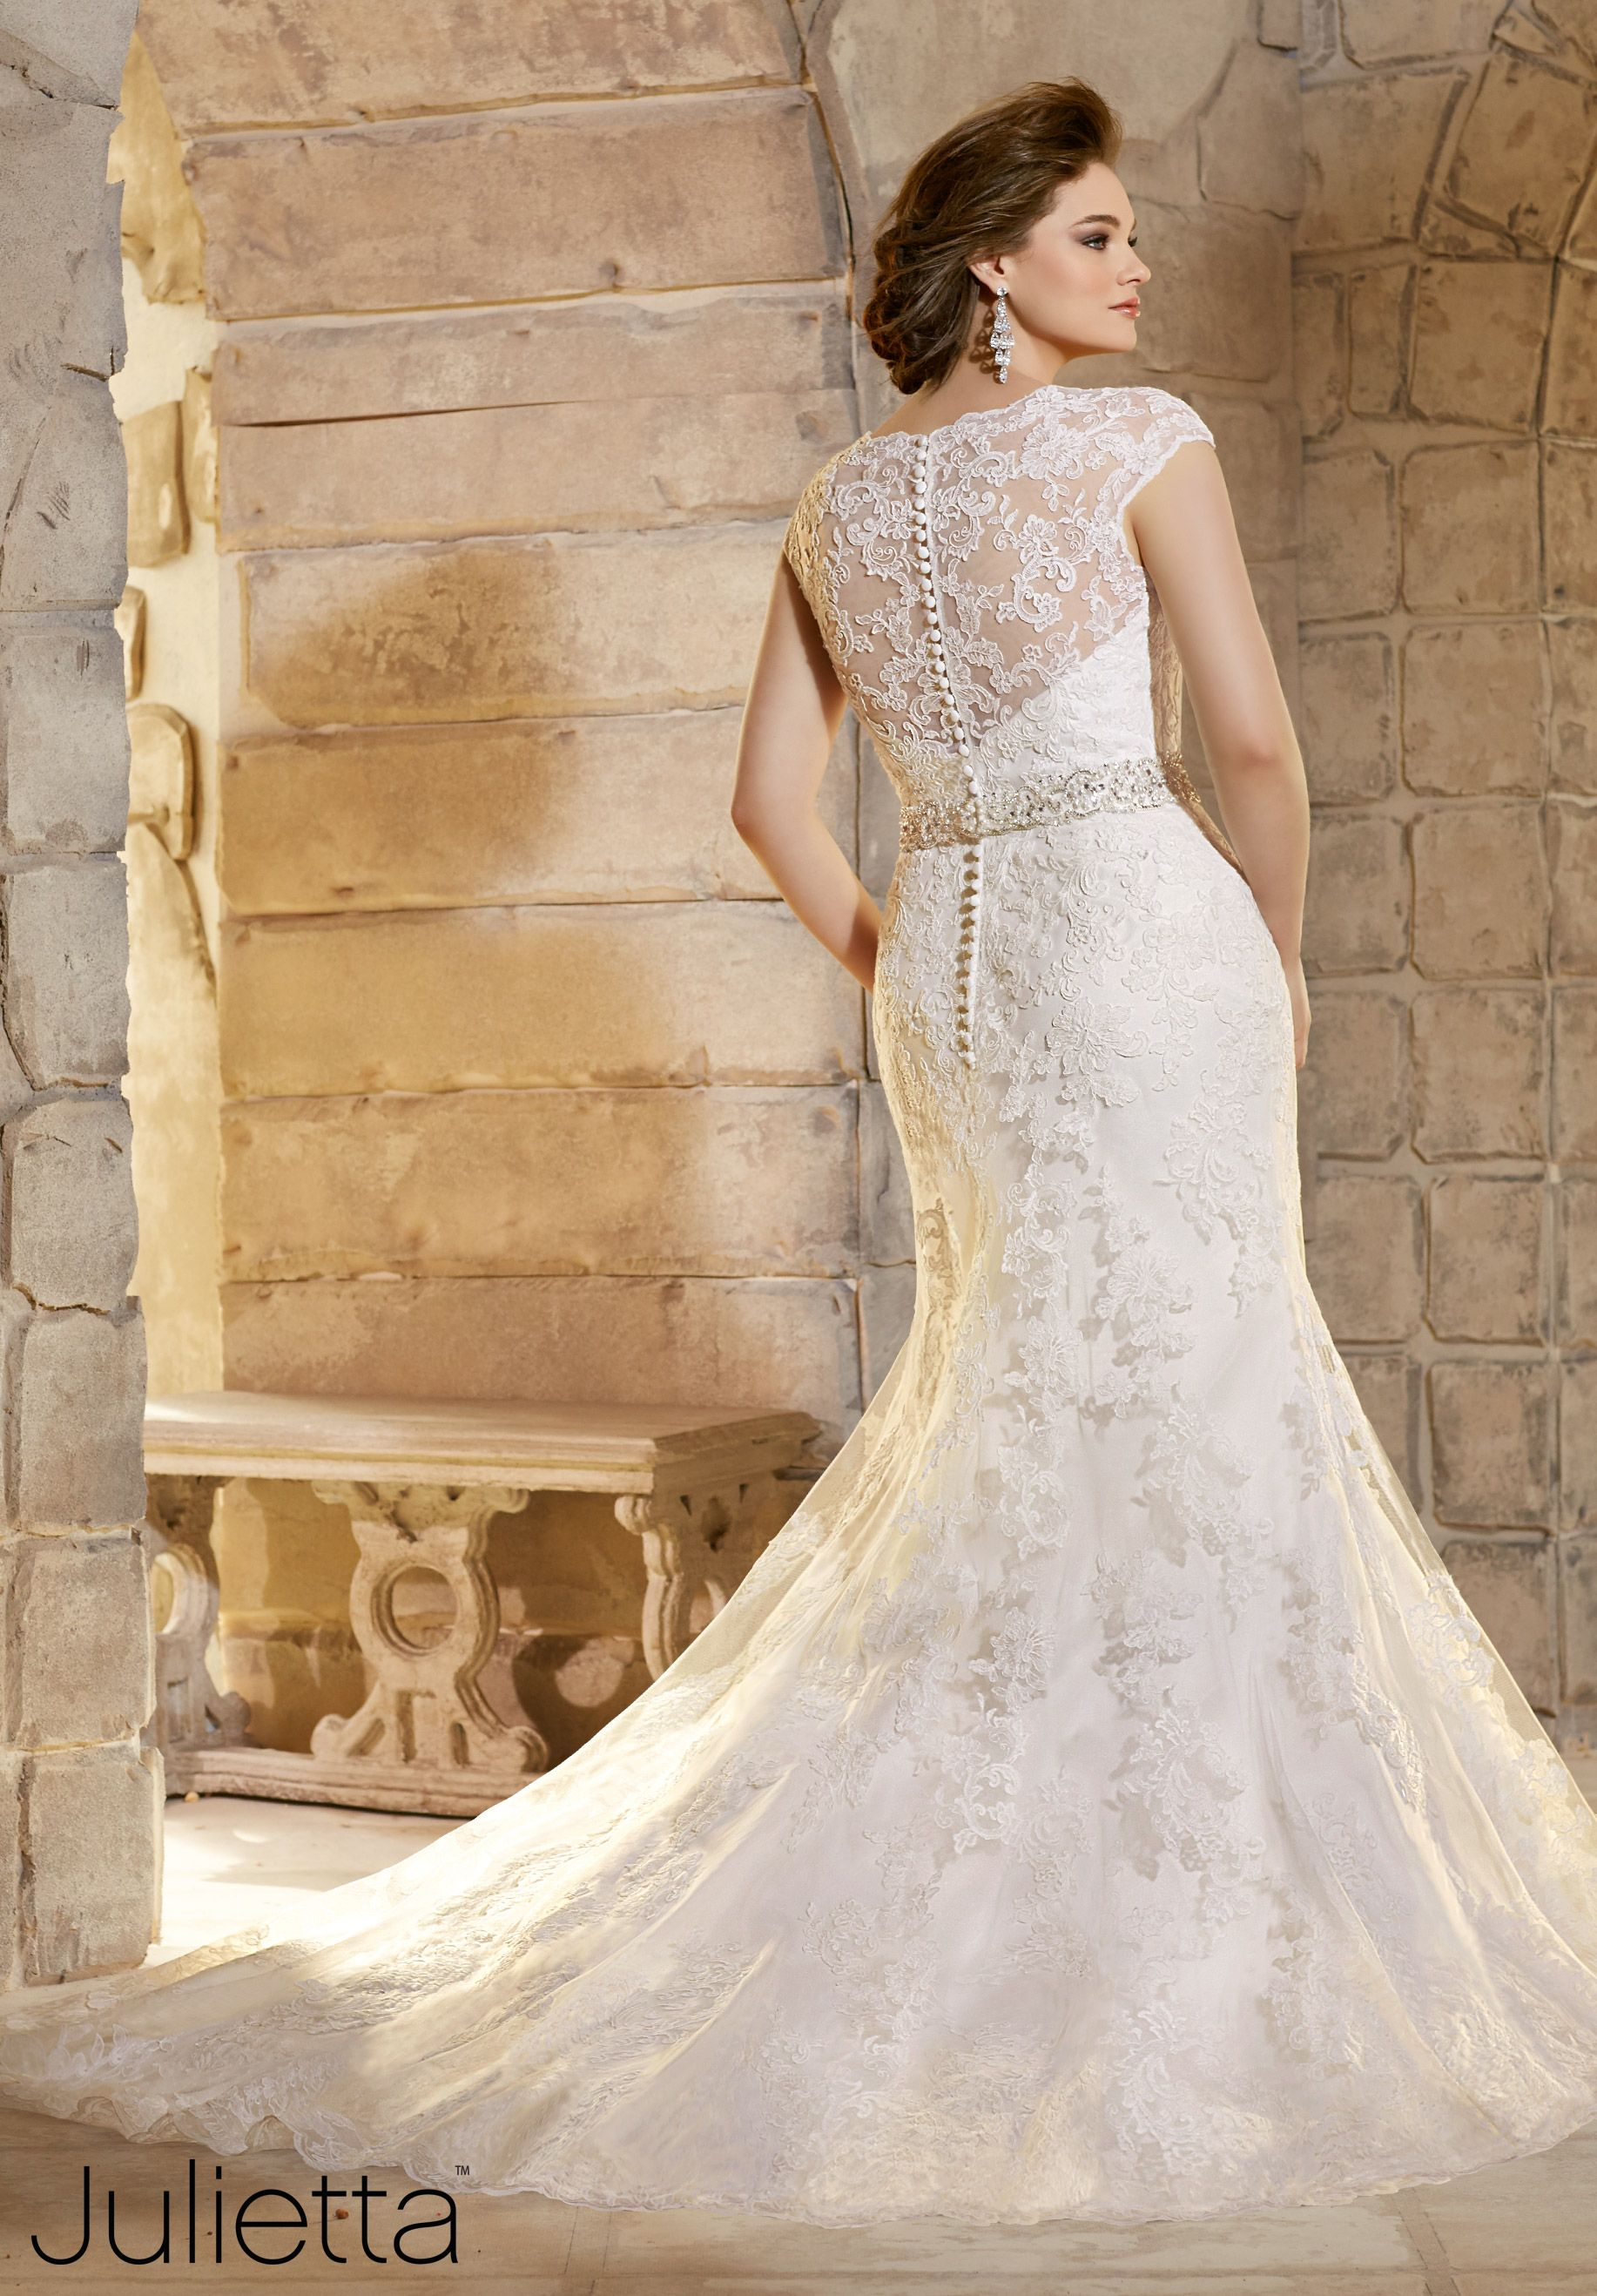 New Plus Size Wedding Dress Embroidered Appliques on Net with Wide Hemline Border